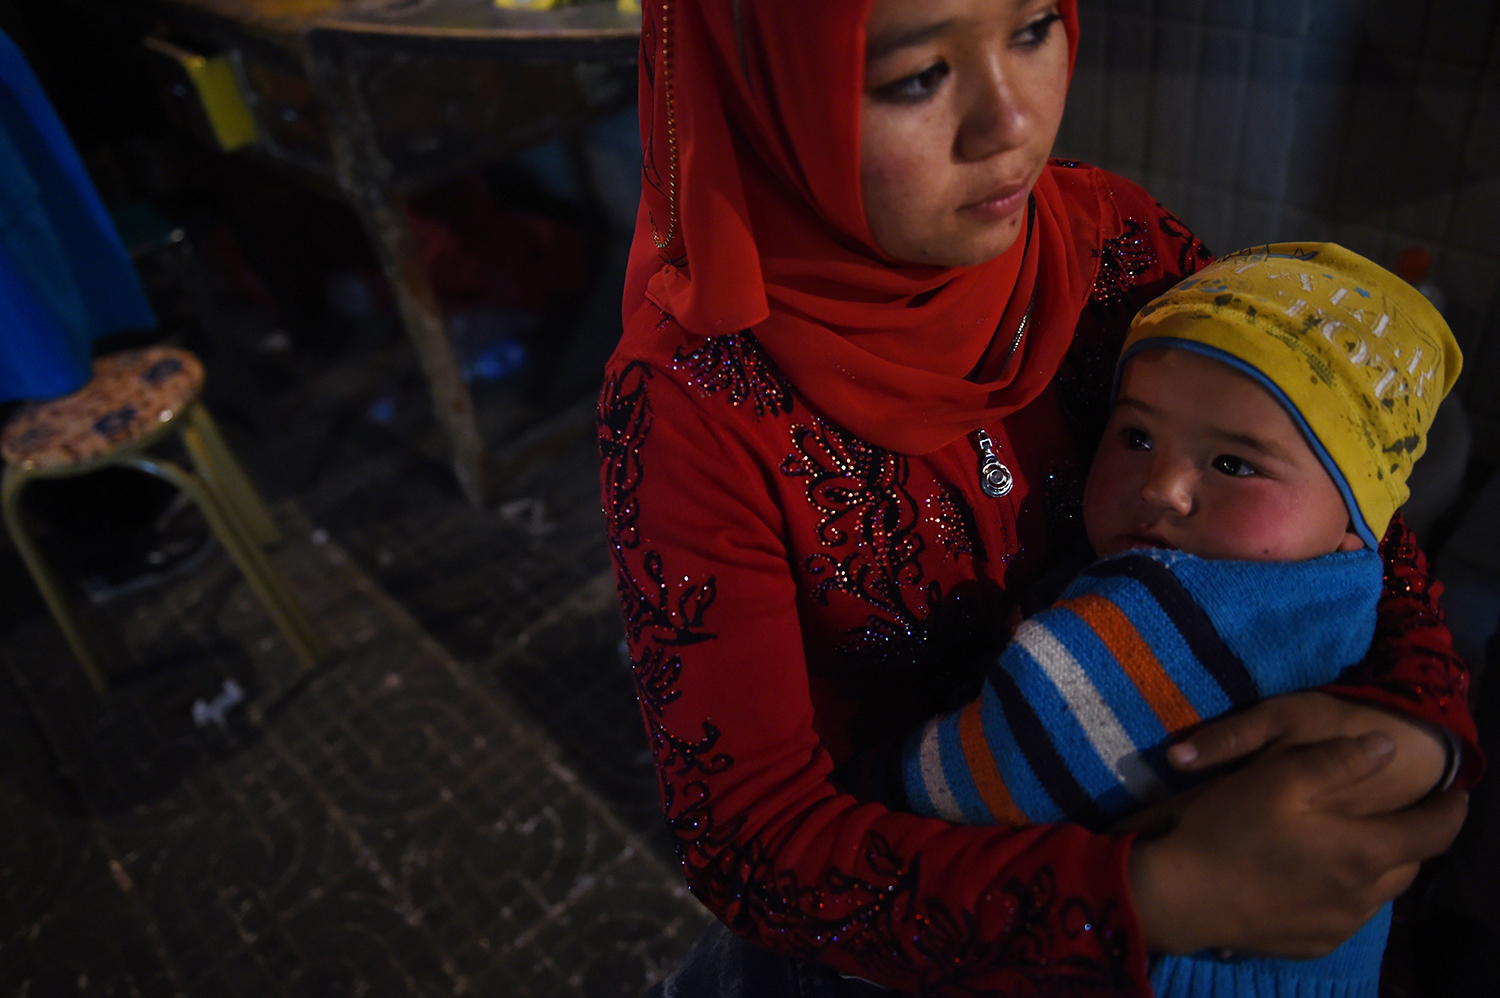 A Uighur woman holds her baby at a night market in Hotan, in China's western Xinjiang region on April 15, 2015.